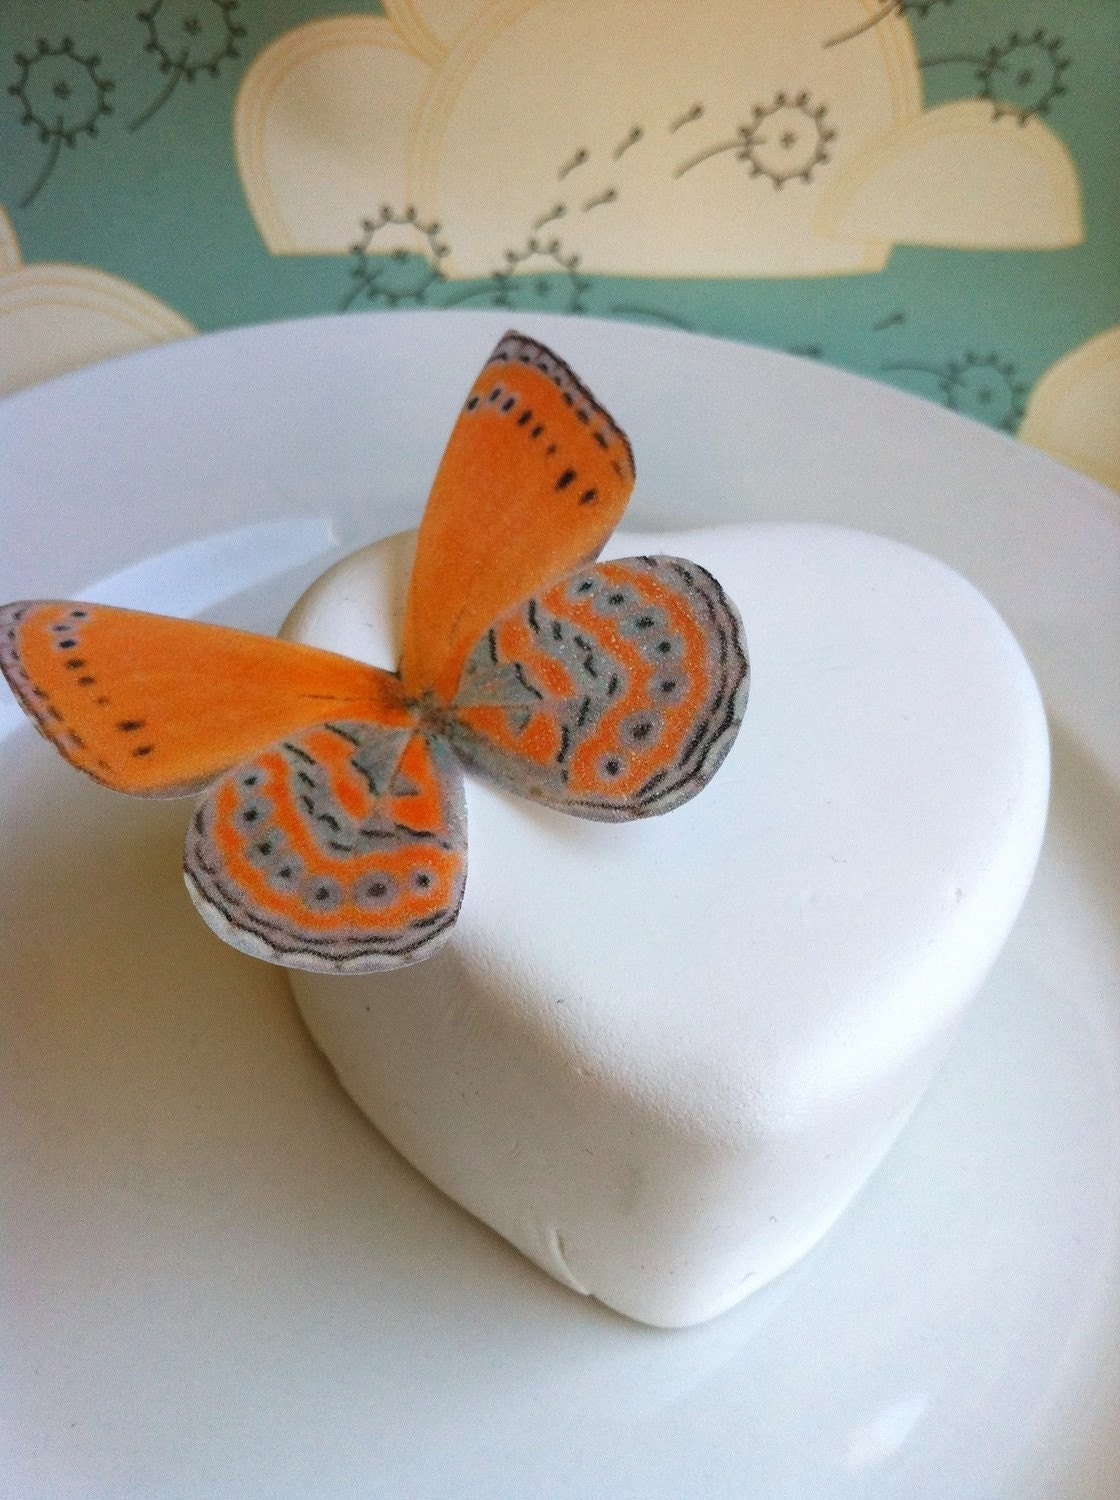 Edible Butterfllies - Bright Orange